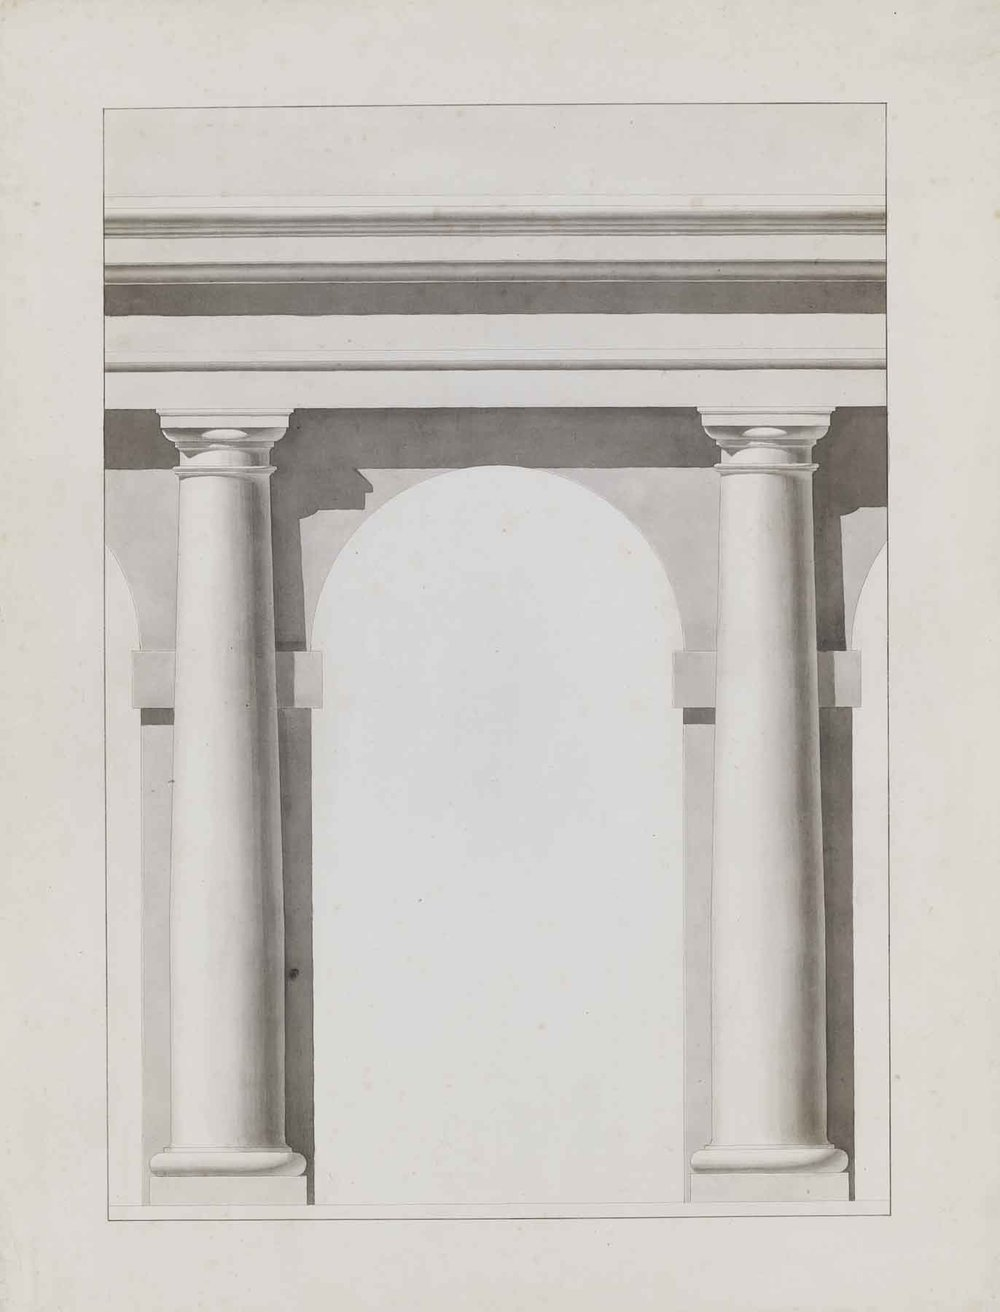 "Théodore Olivier (French, 1821-1899),  Study of Columns,  c. 1840, ink and lavis (wash) on paper, 31 1/2 x 25 1/2"" framed"